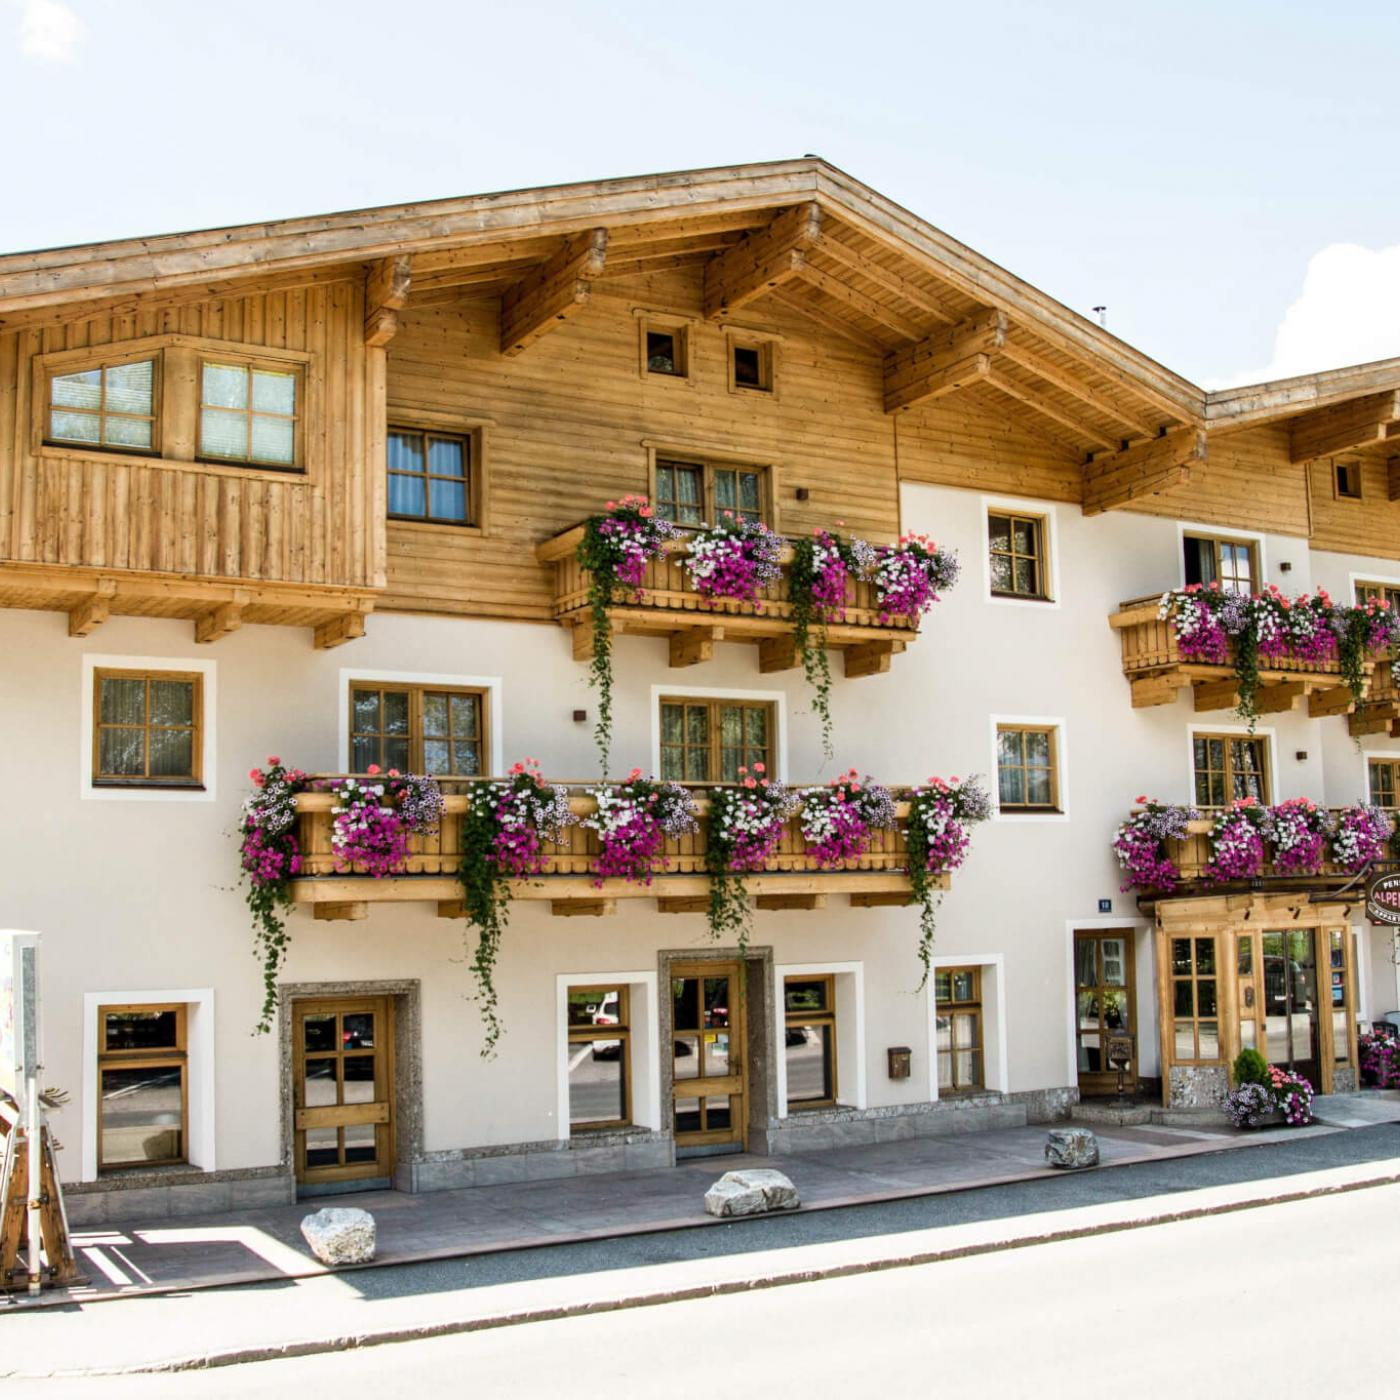 Pension Alpenrose in Kaprun.